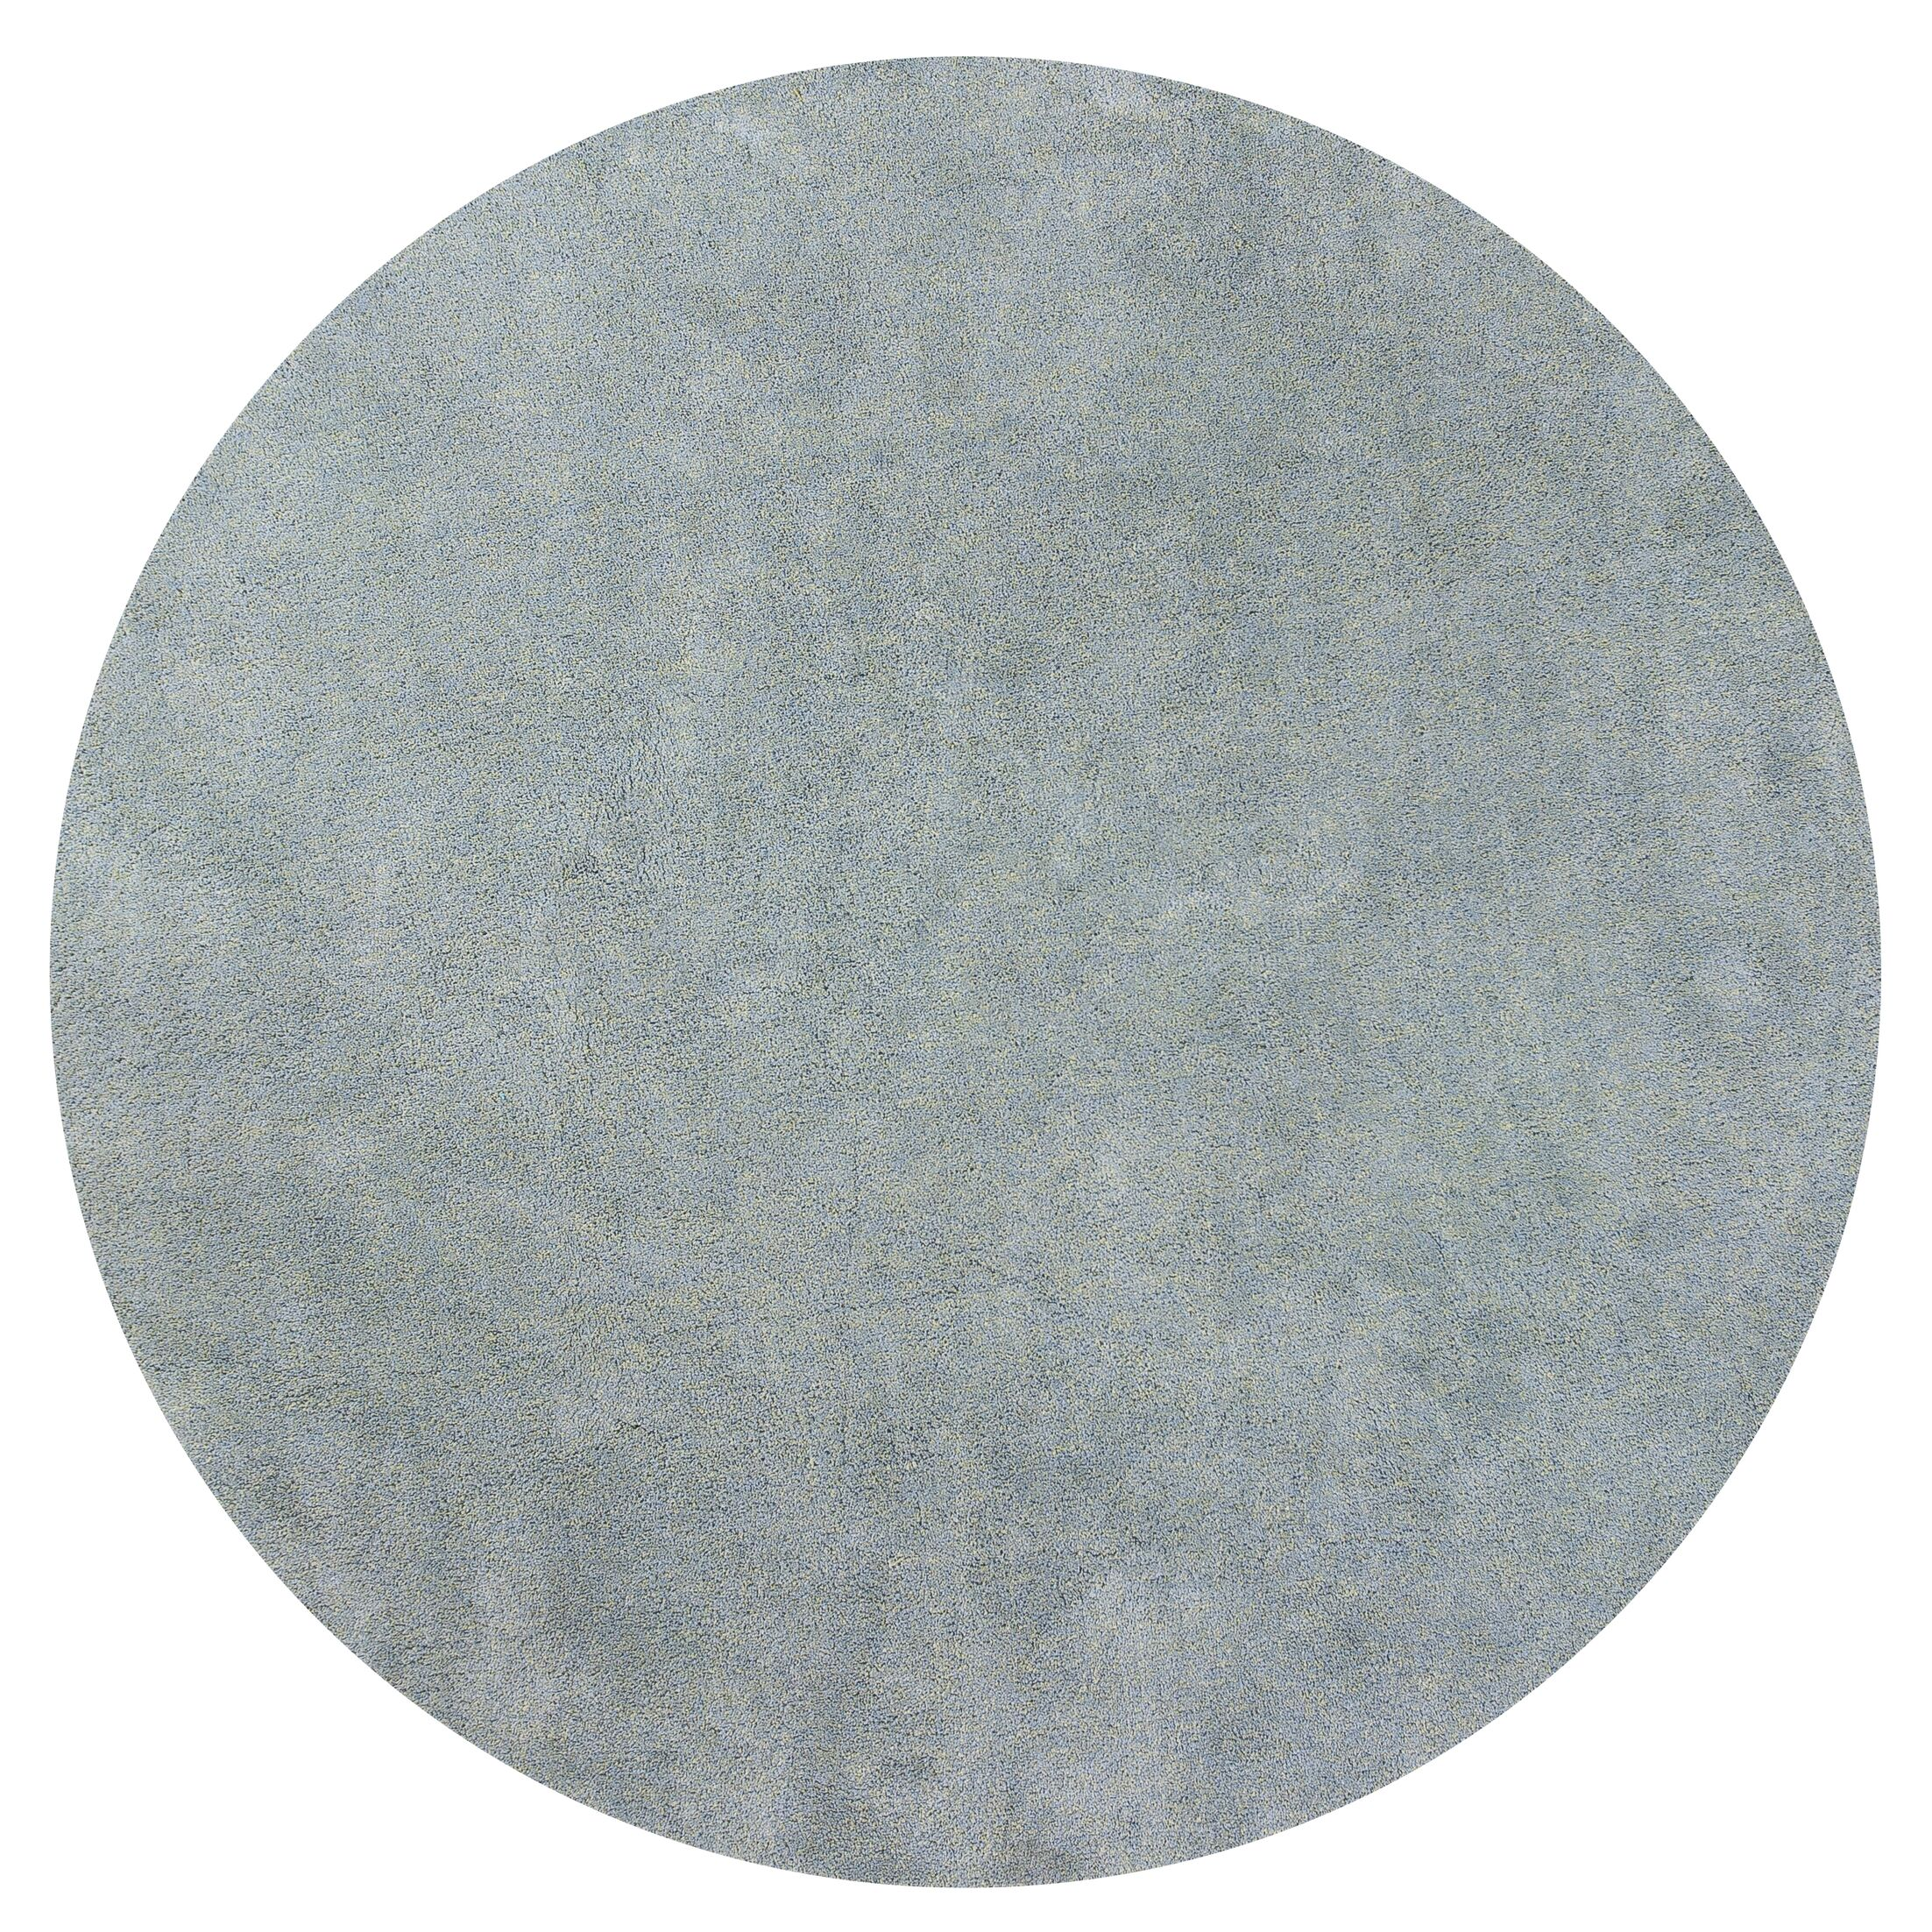 Bouvier Blue Heather Area Rug Rug Size: Round 8'